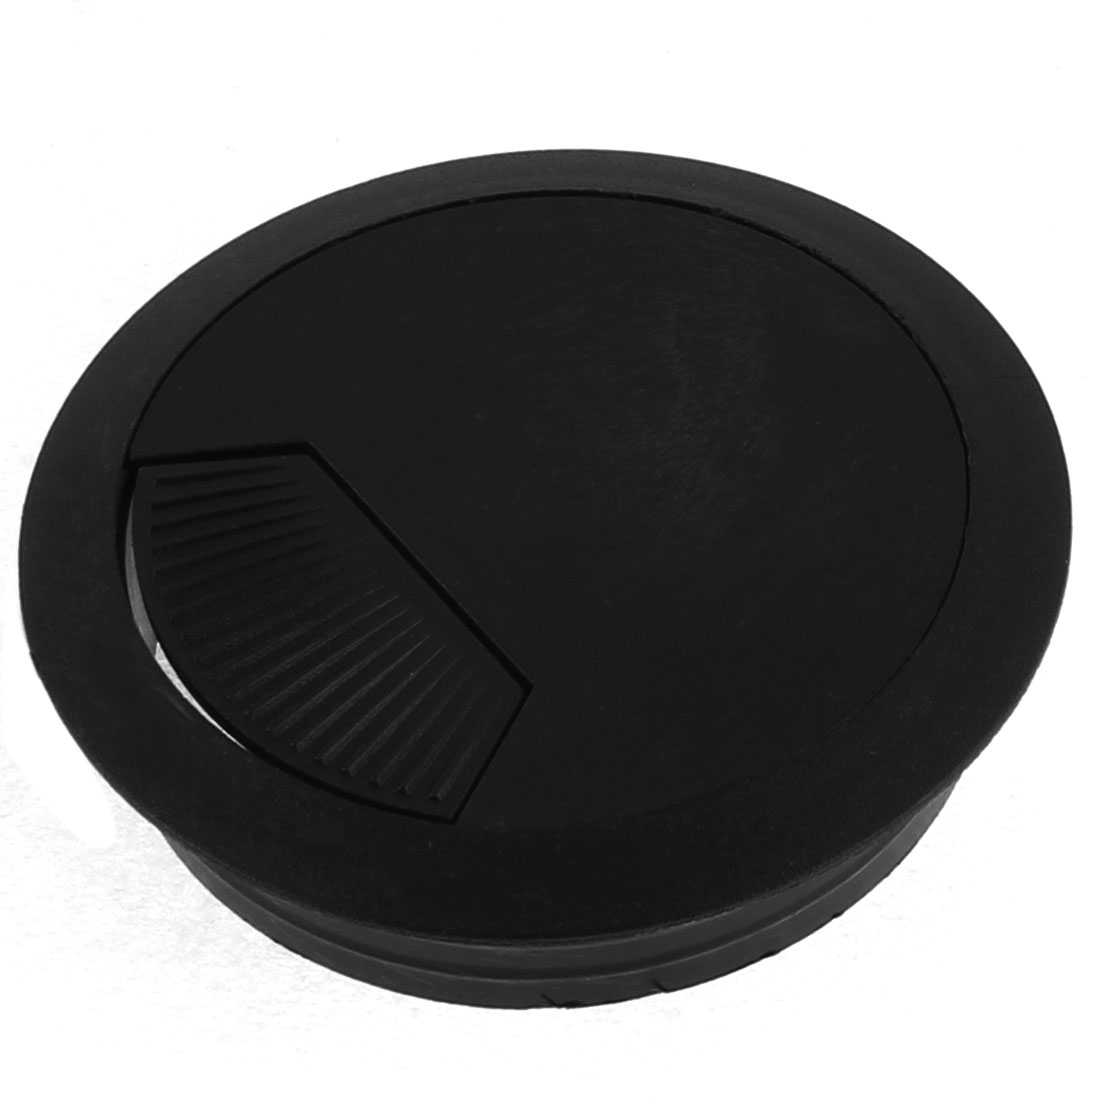 Plastic Grommet PC Computer Wire Cable Hole Cover 60mm Bottom Dia Black